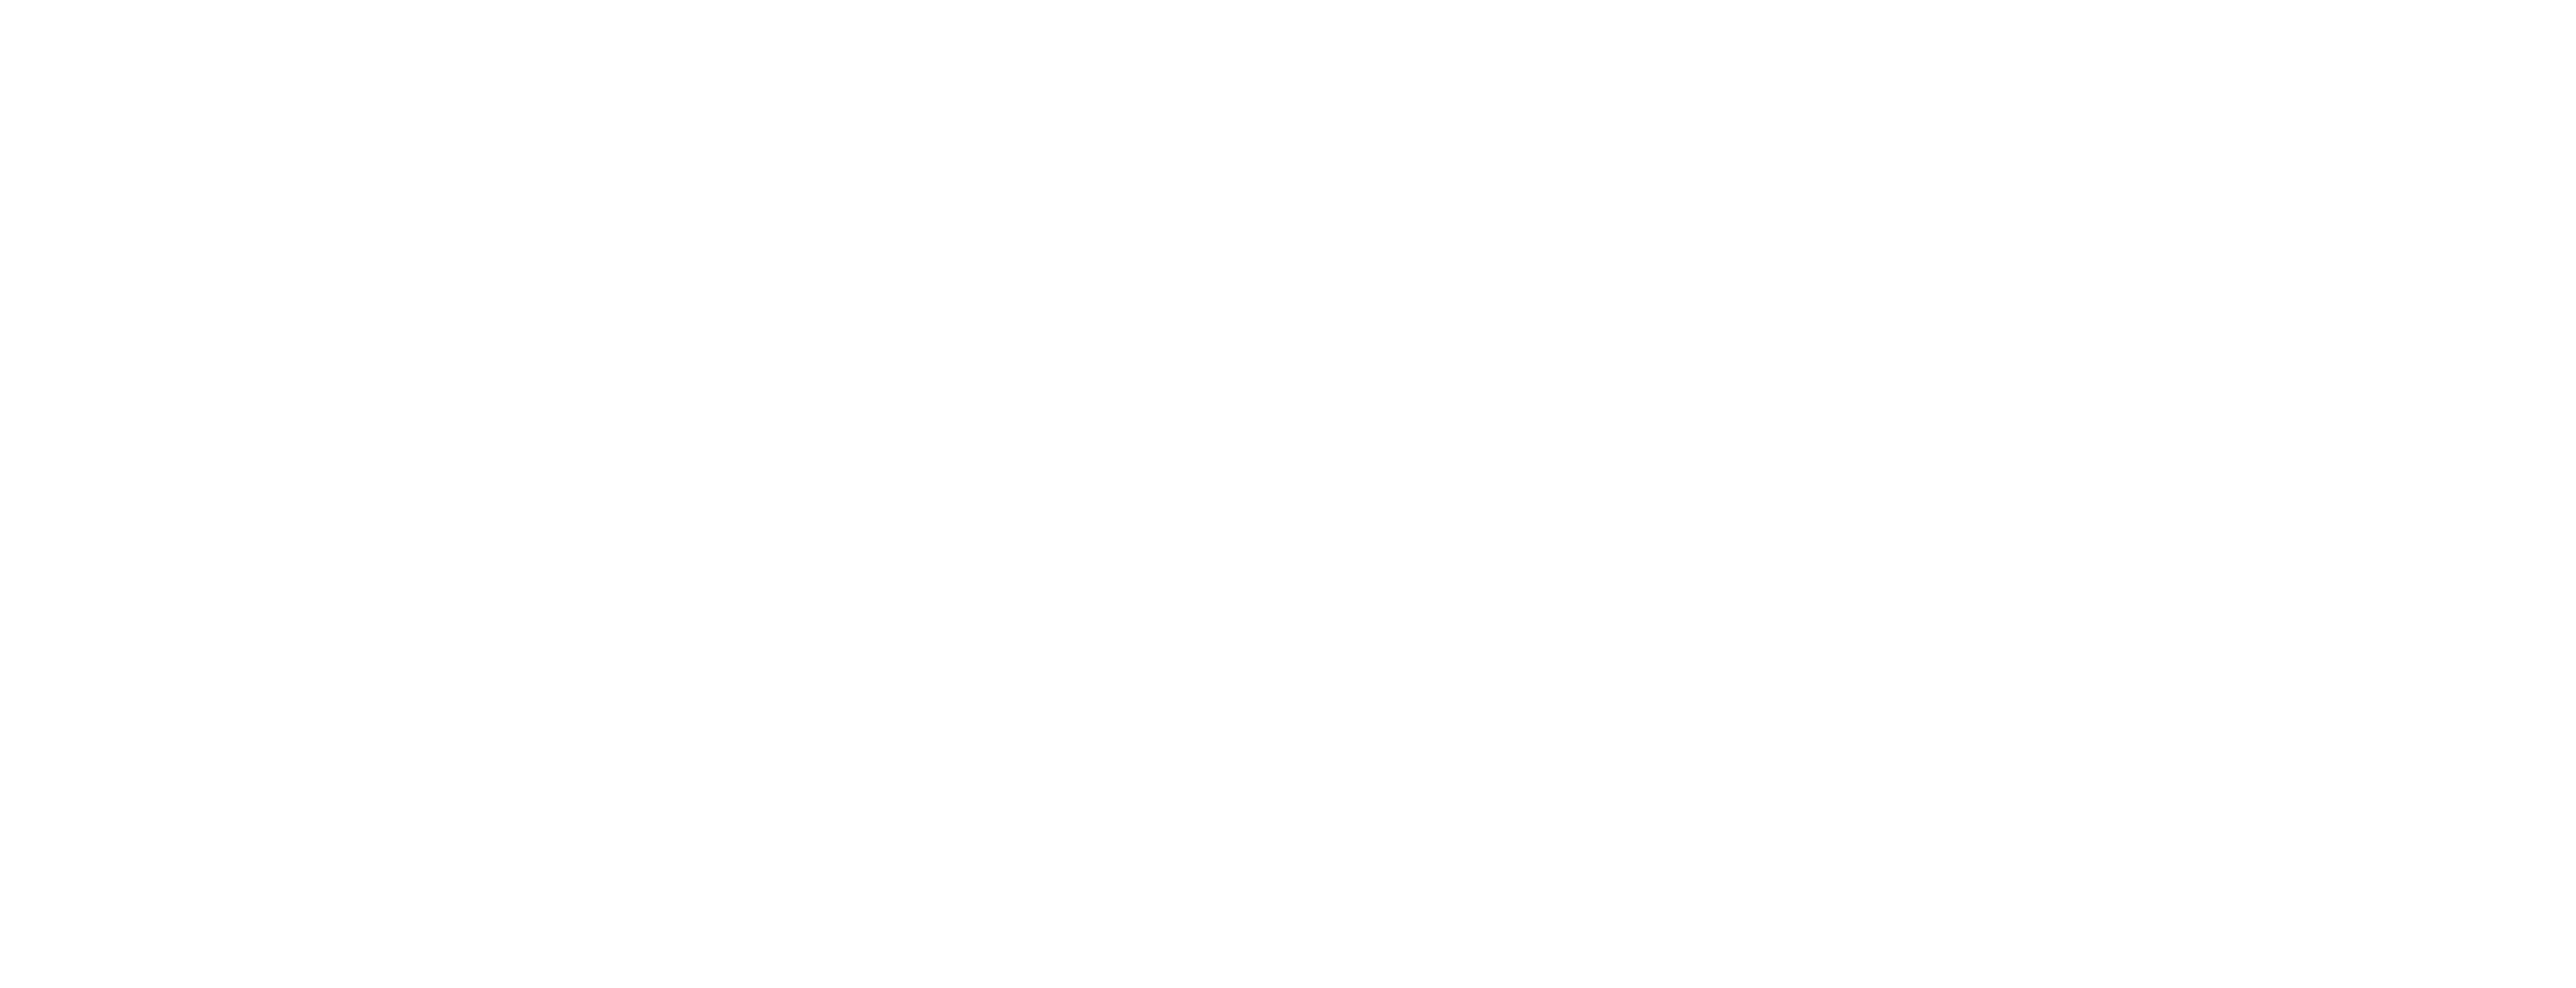 A visual riddle depicting circular symbols with different numerical values